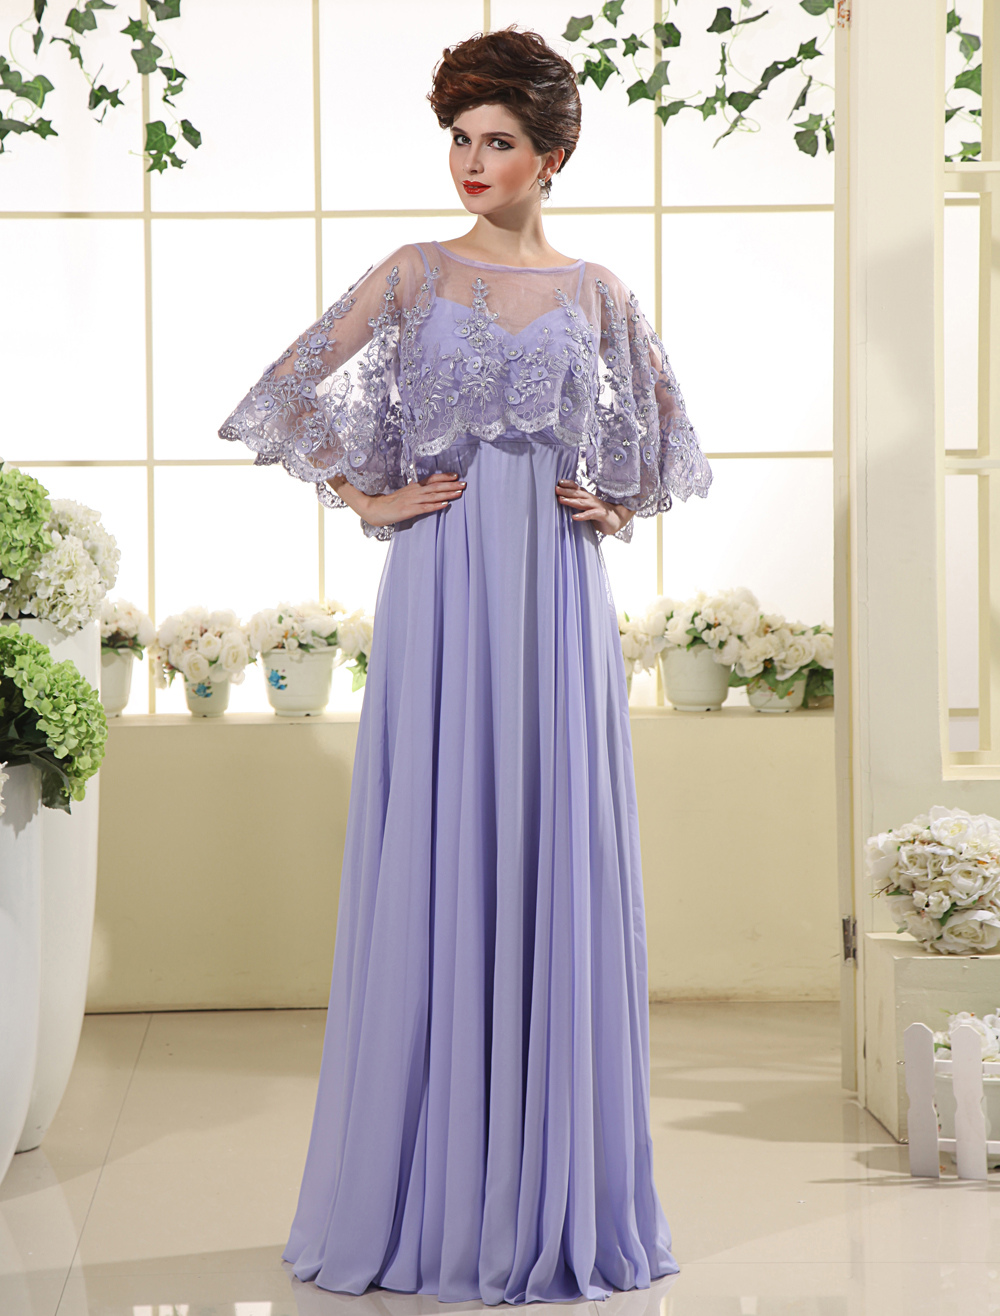 Violet Bridesmaid Dress 2 Piece Chiffon Prom Dress Lace Embroidered Illusion Poncho Floor Length Mother Of The Bride Dress  Wedding Guest Dress Milanoo